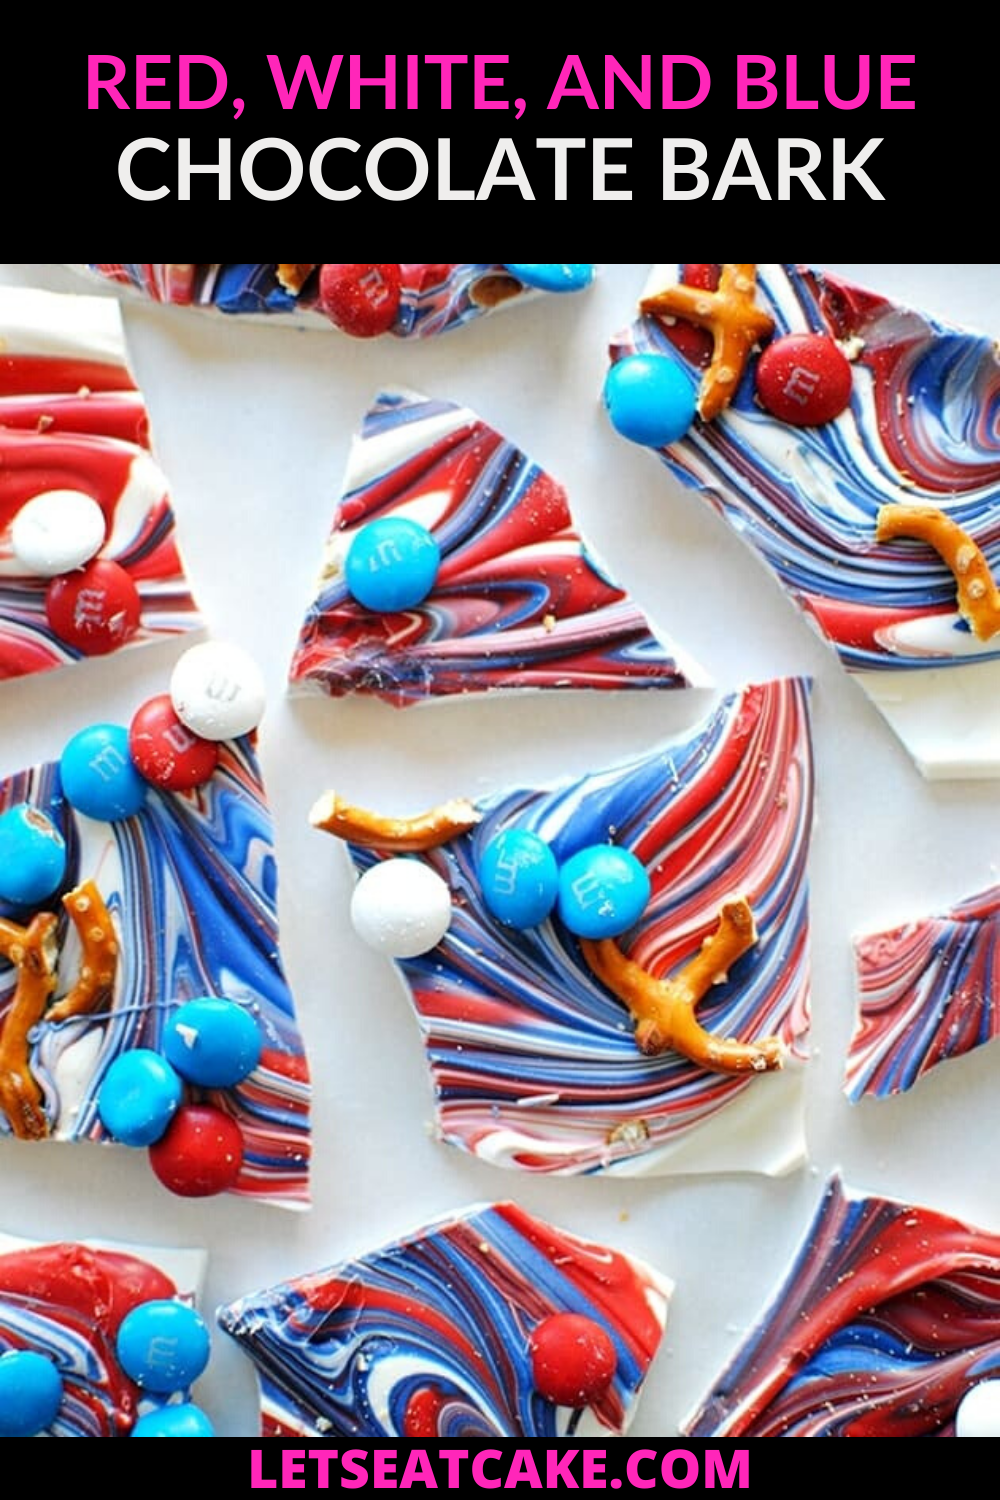 Looking for red, white, and blue desserts or 4th of July ideas? This easy candy bark is perfect for a 4th of July party or Memorial Day event! #memorialday #patriotic #patrioticdesserts #redwhiteandblue #redwhiteandbluedesserts #fourthofjulyideas #fourthofjulyfood